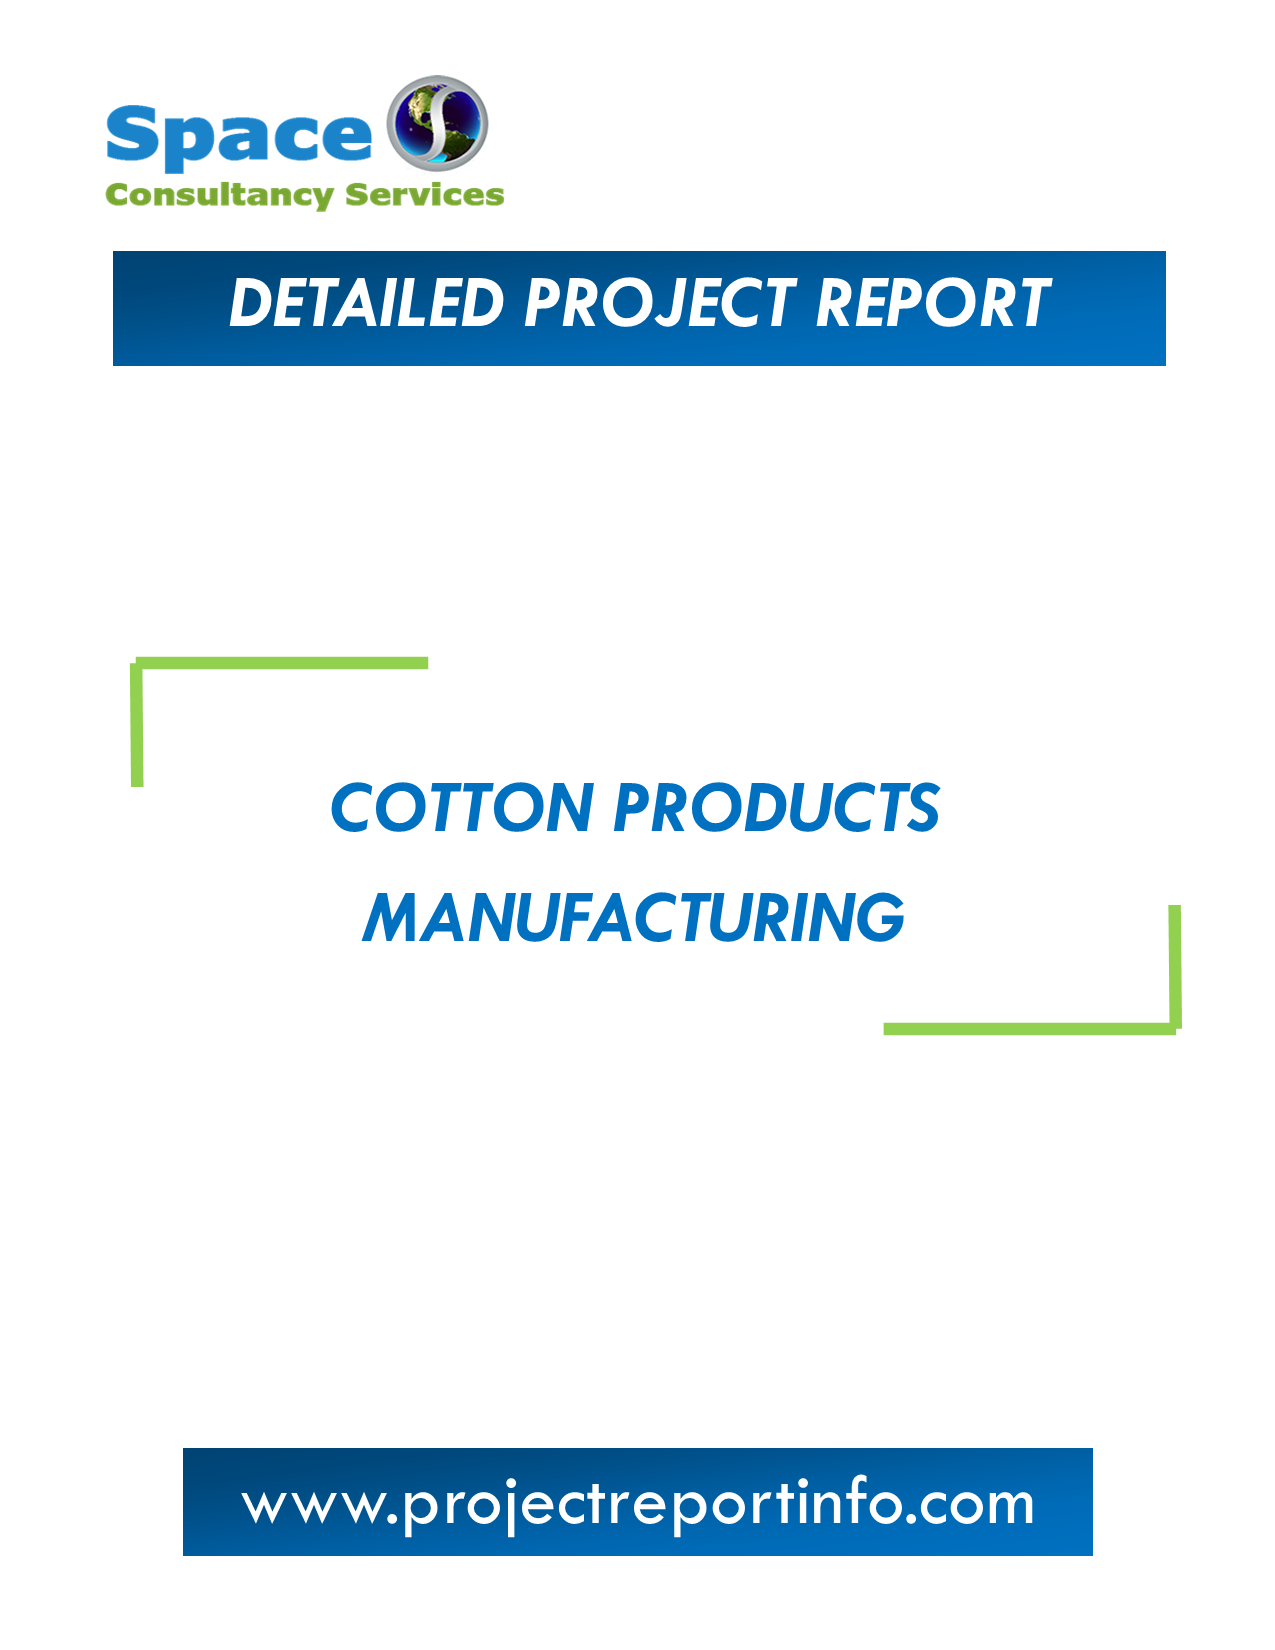 Project Report on Cotton Products Manufacturing